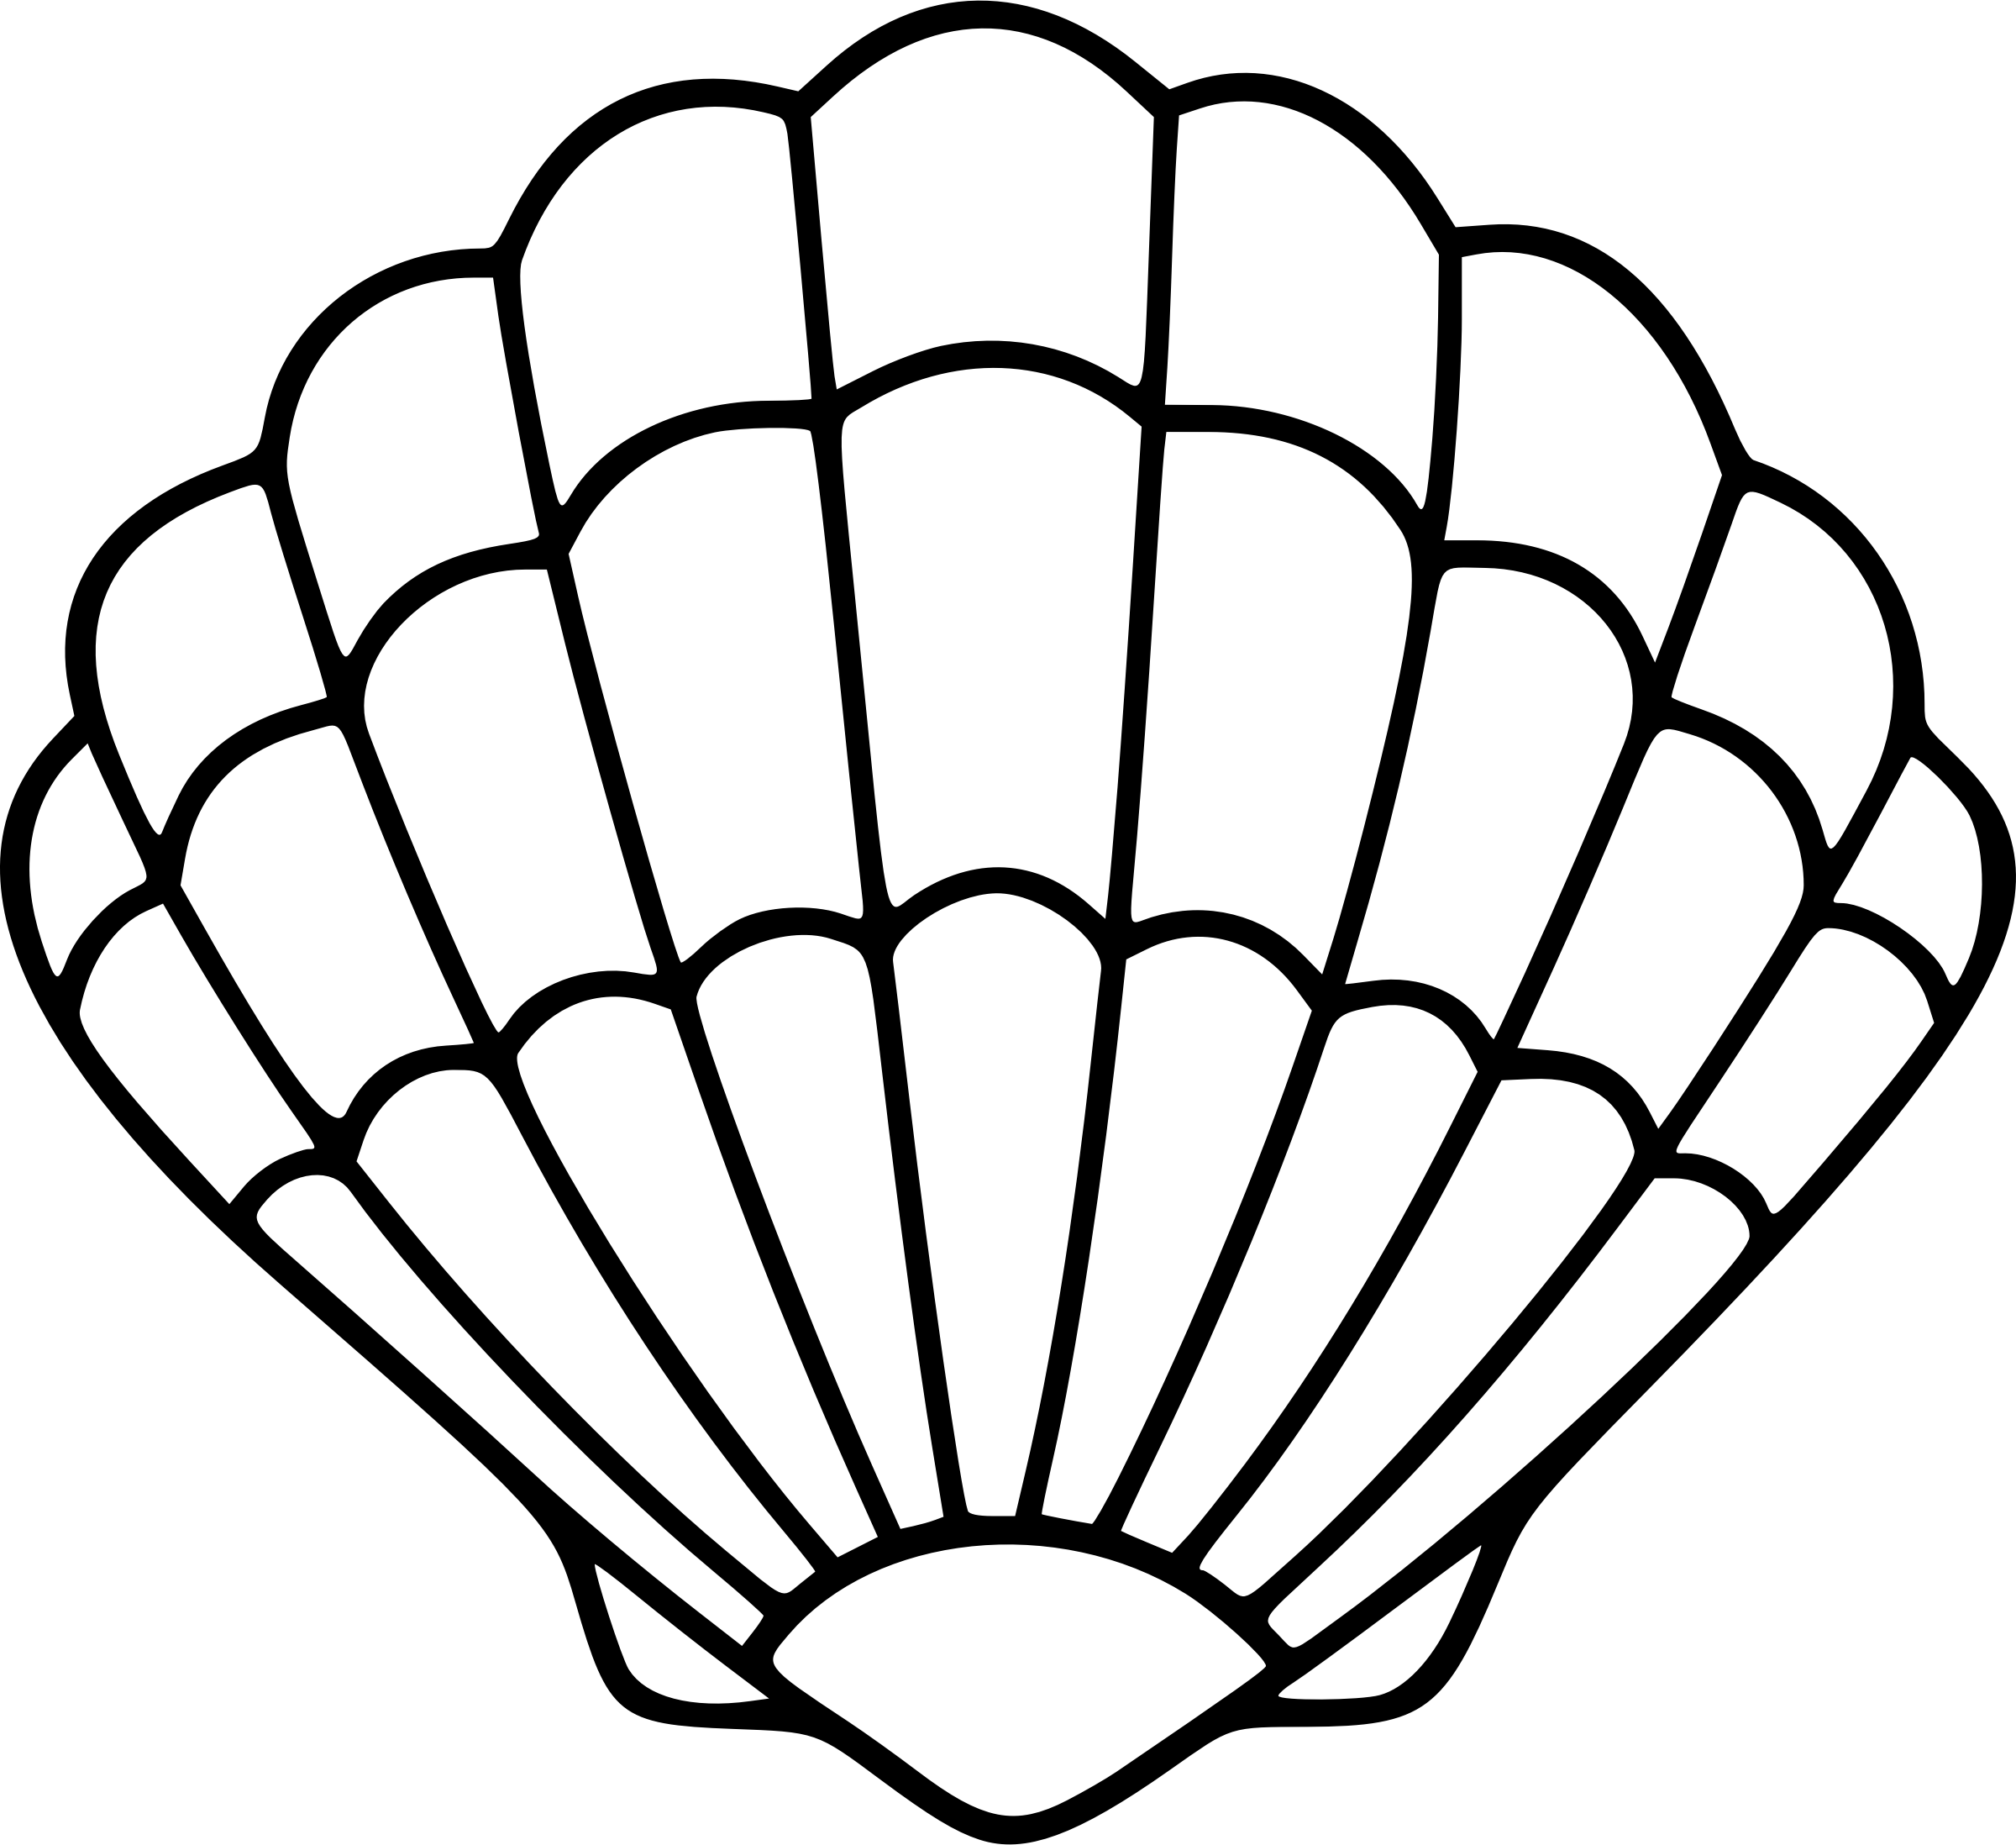 Transparent Seashell Clipart 10 Free Cliparts